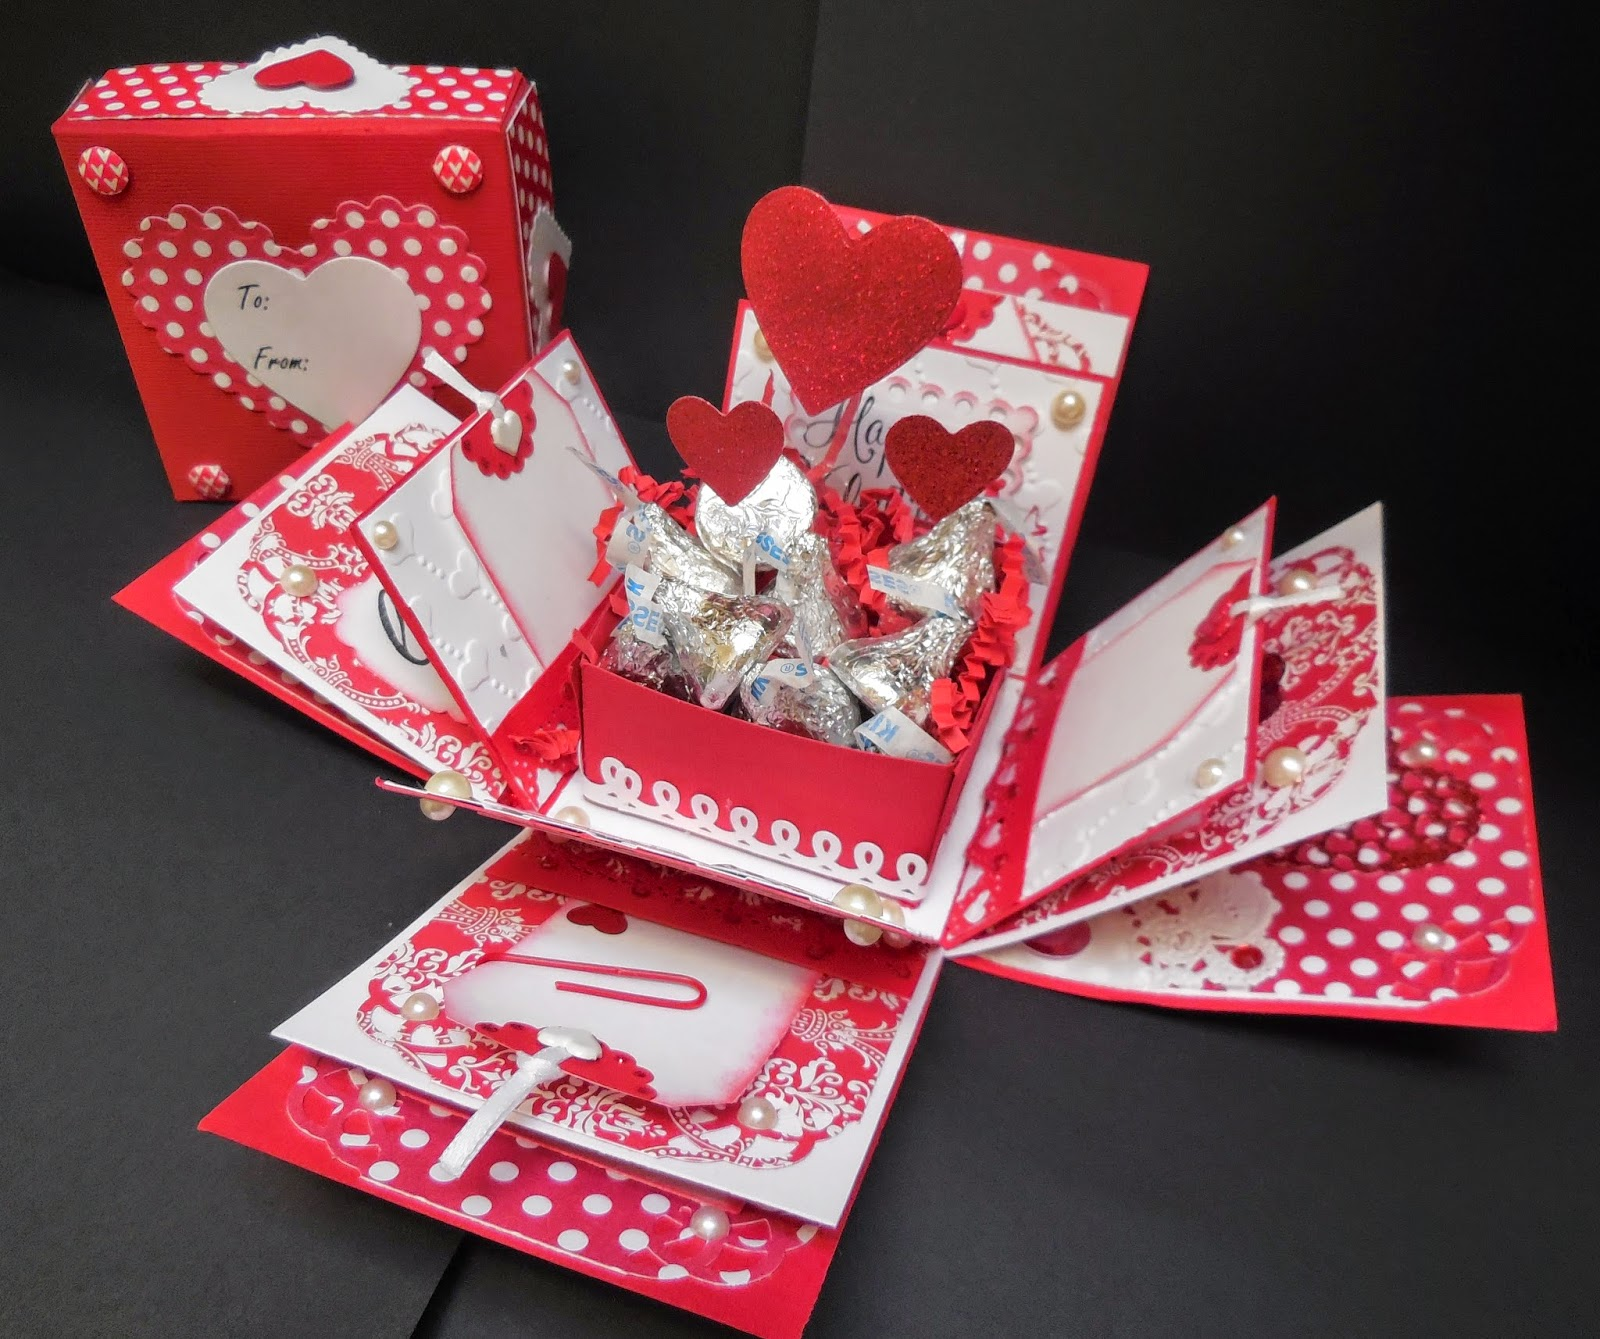 Stamp On Over At Cranberry Hill Mercantile Valentine Explosion Box